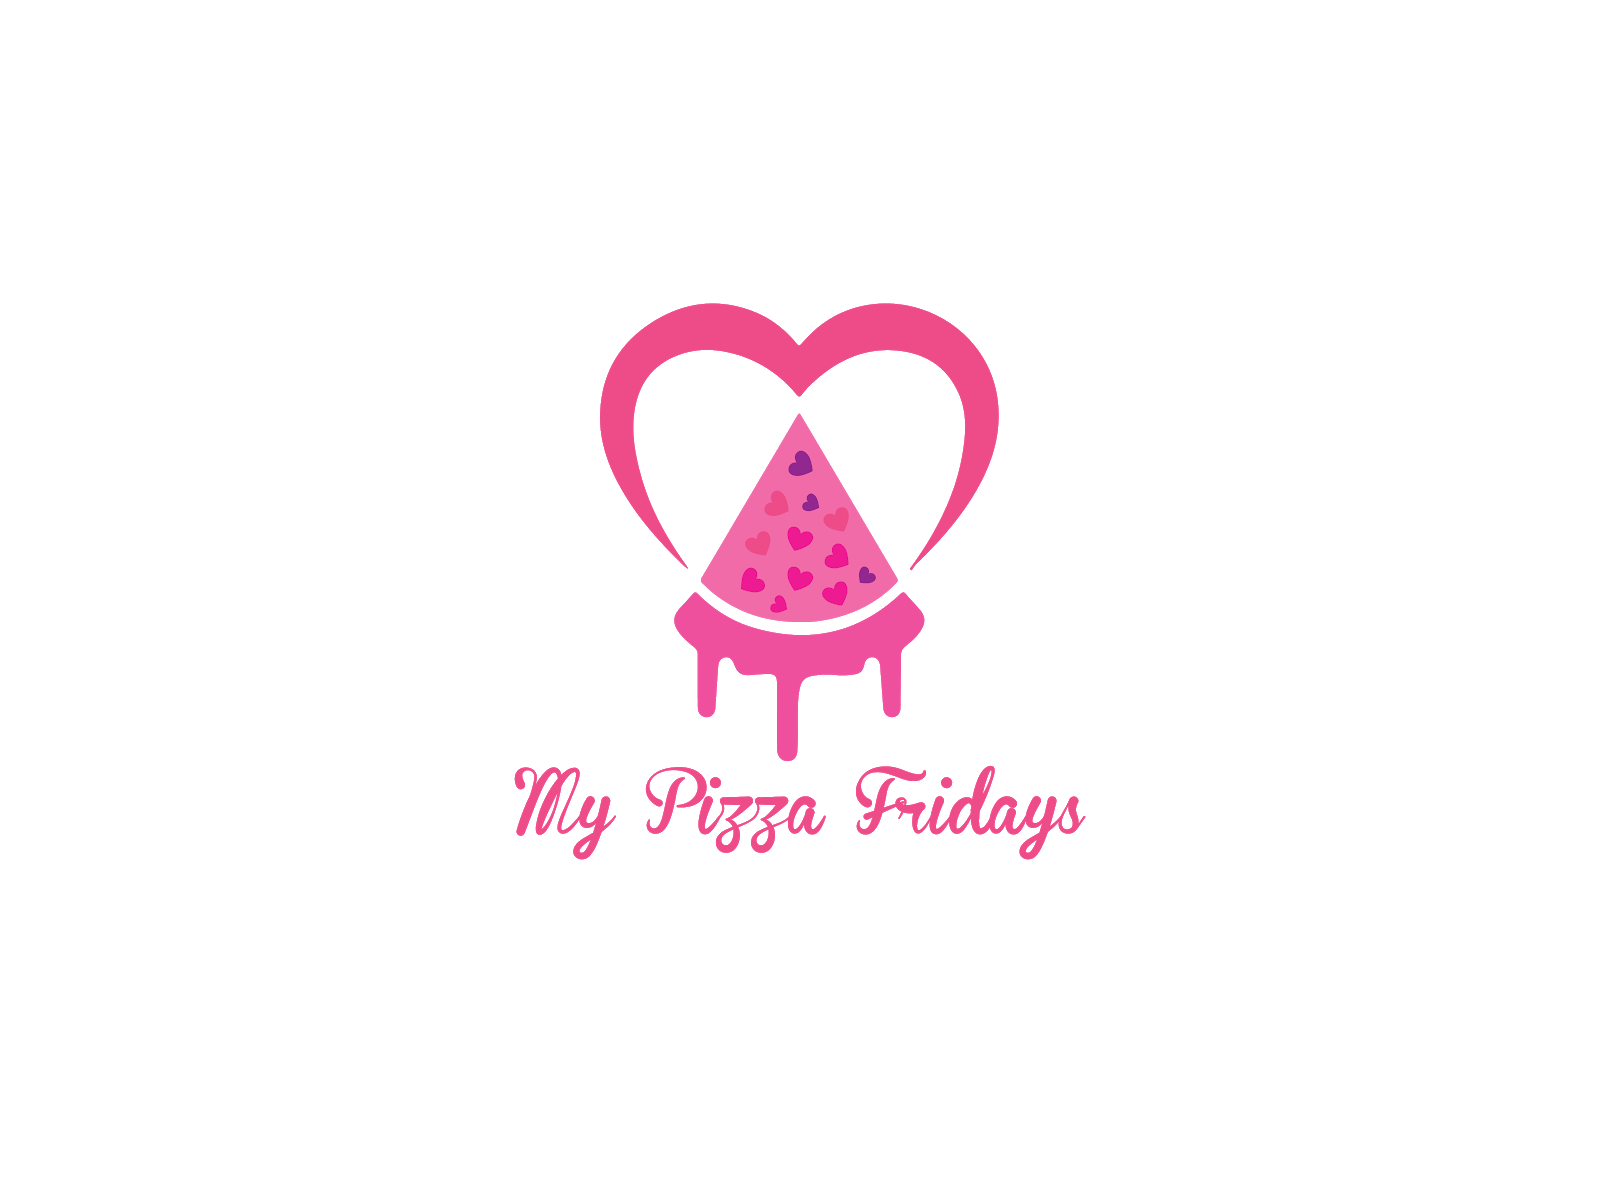 My Pizza Fridays